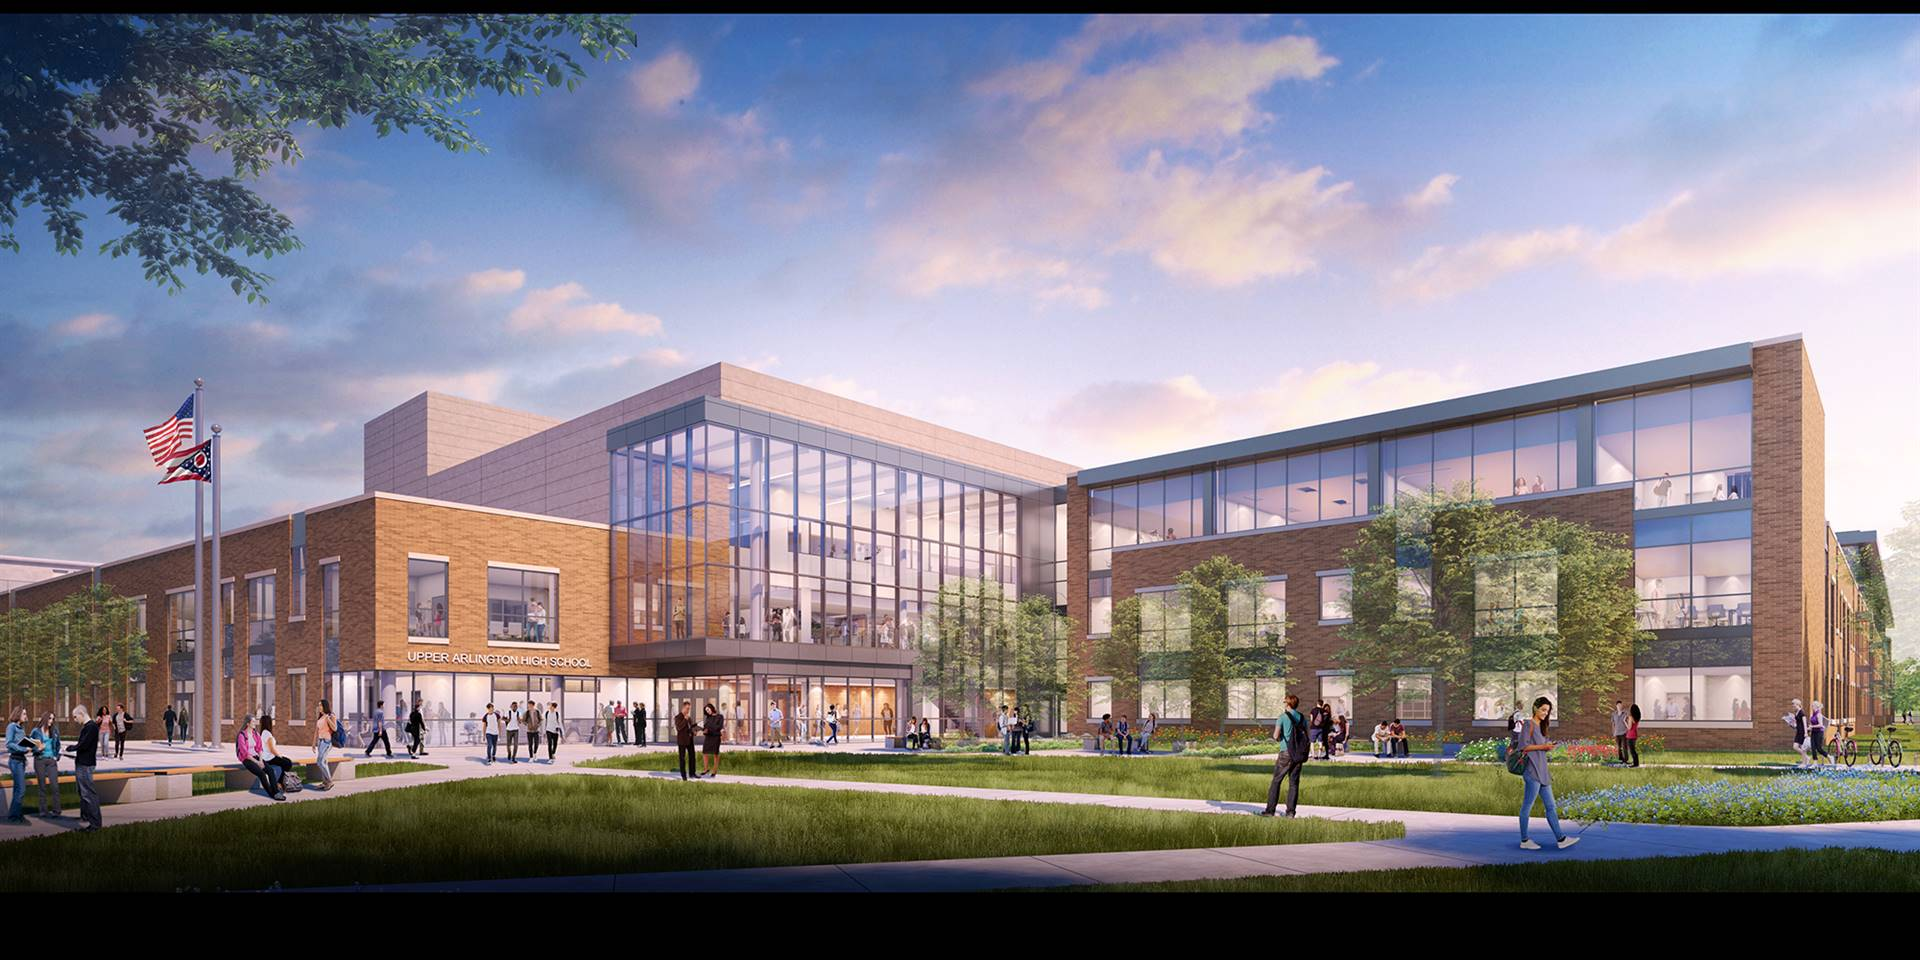 Final design plan for the new Upper Arlington High School, January 2019